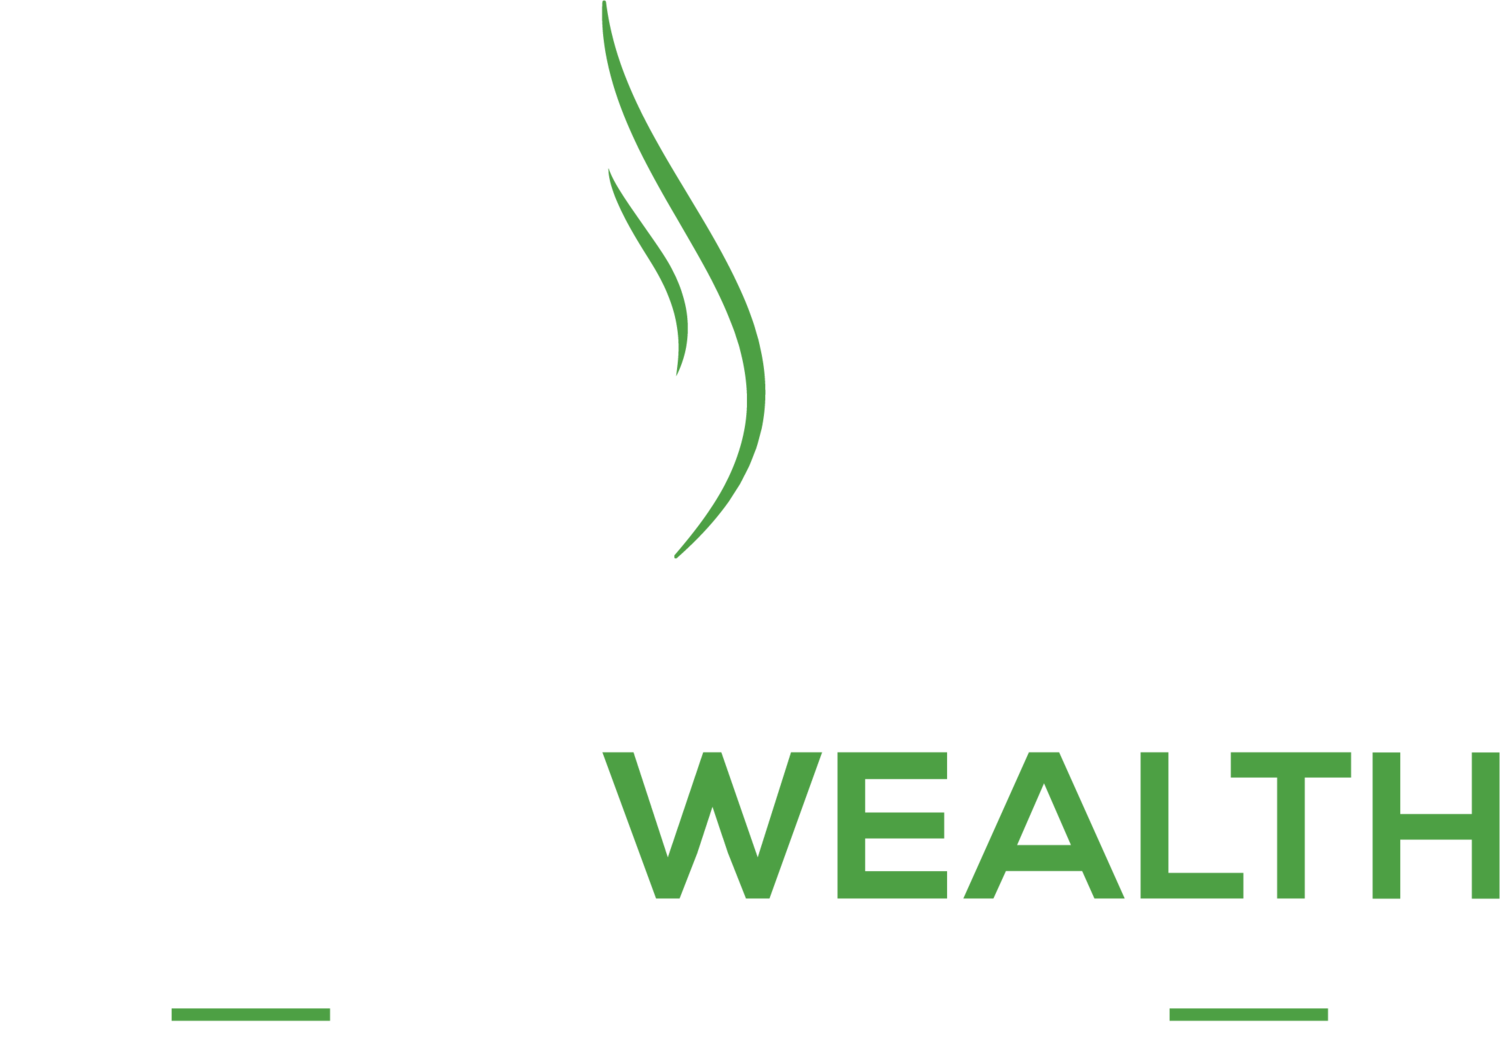 Java Wealth Planning